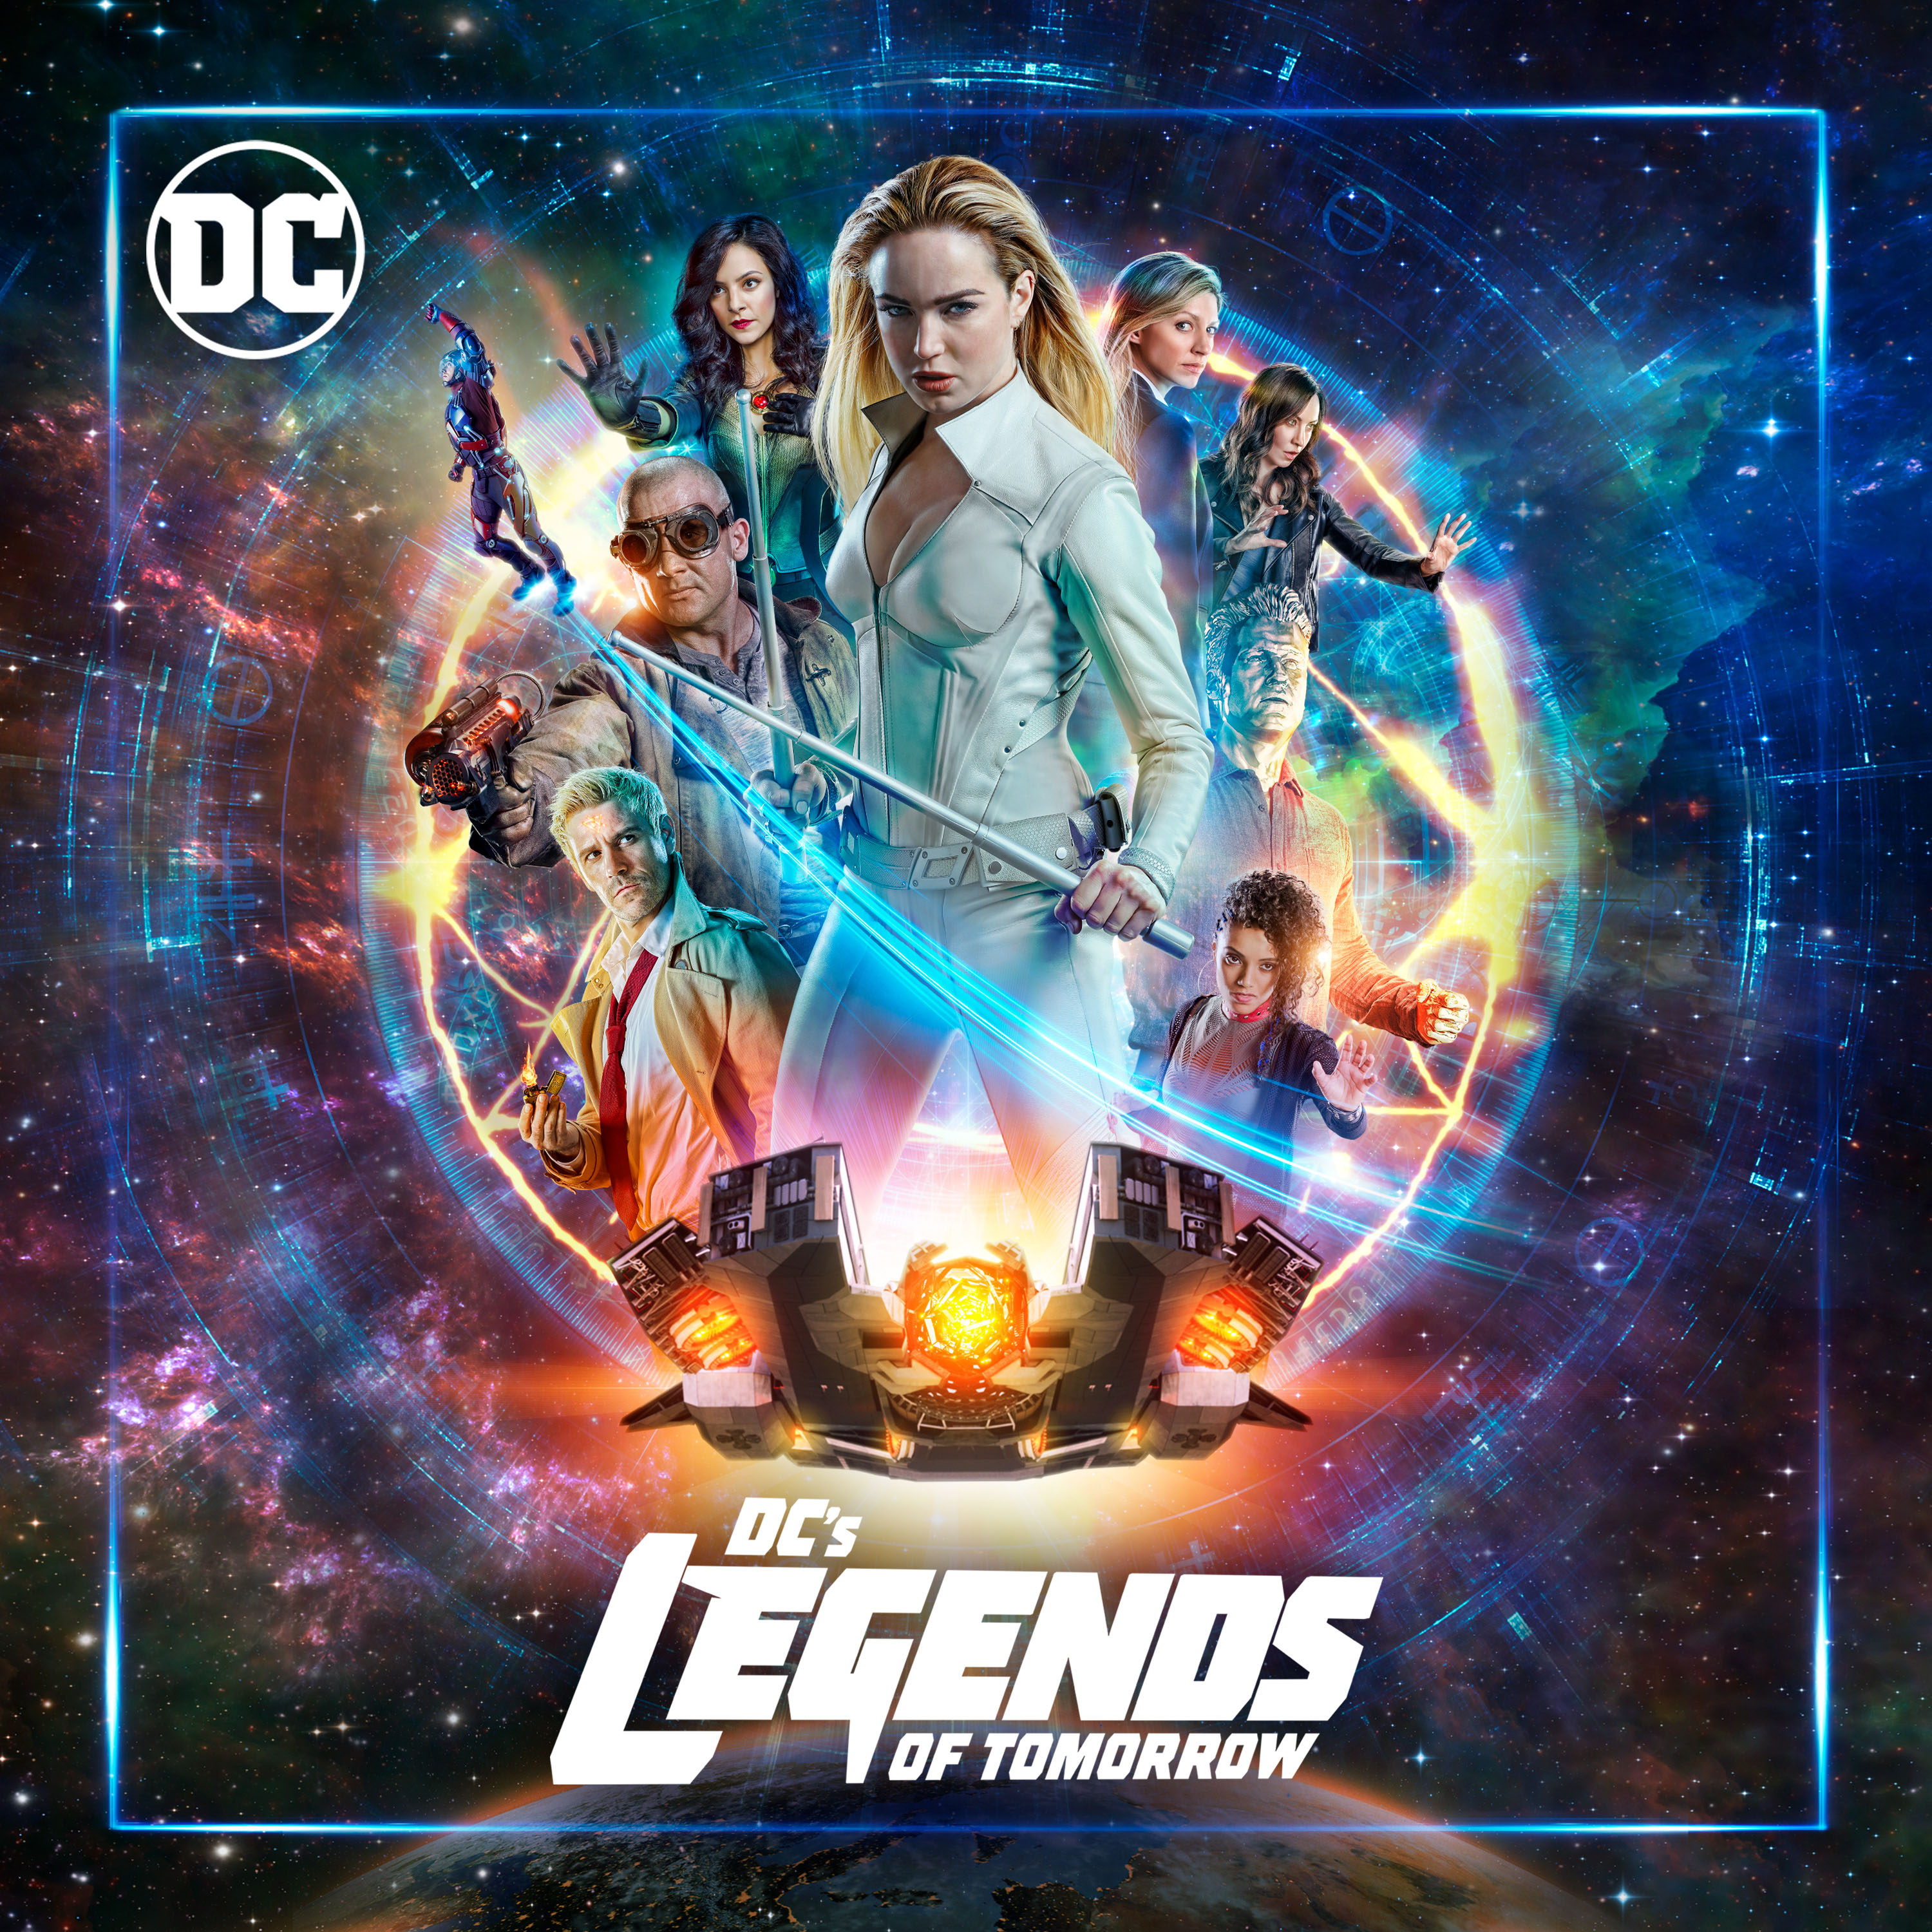 DC's Legends of Tomorrow (Subtitled)